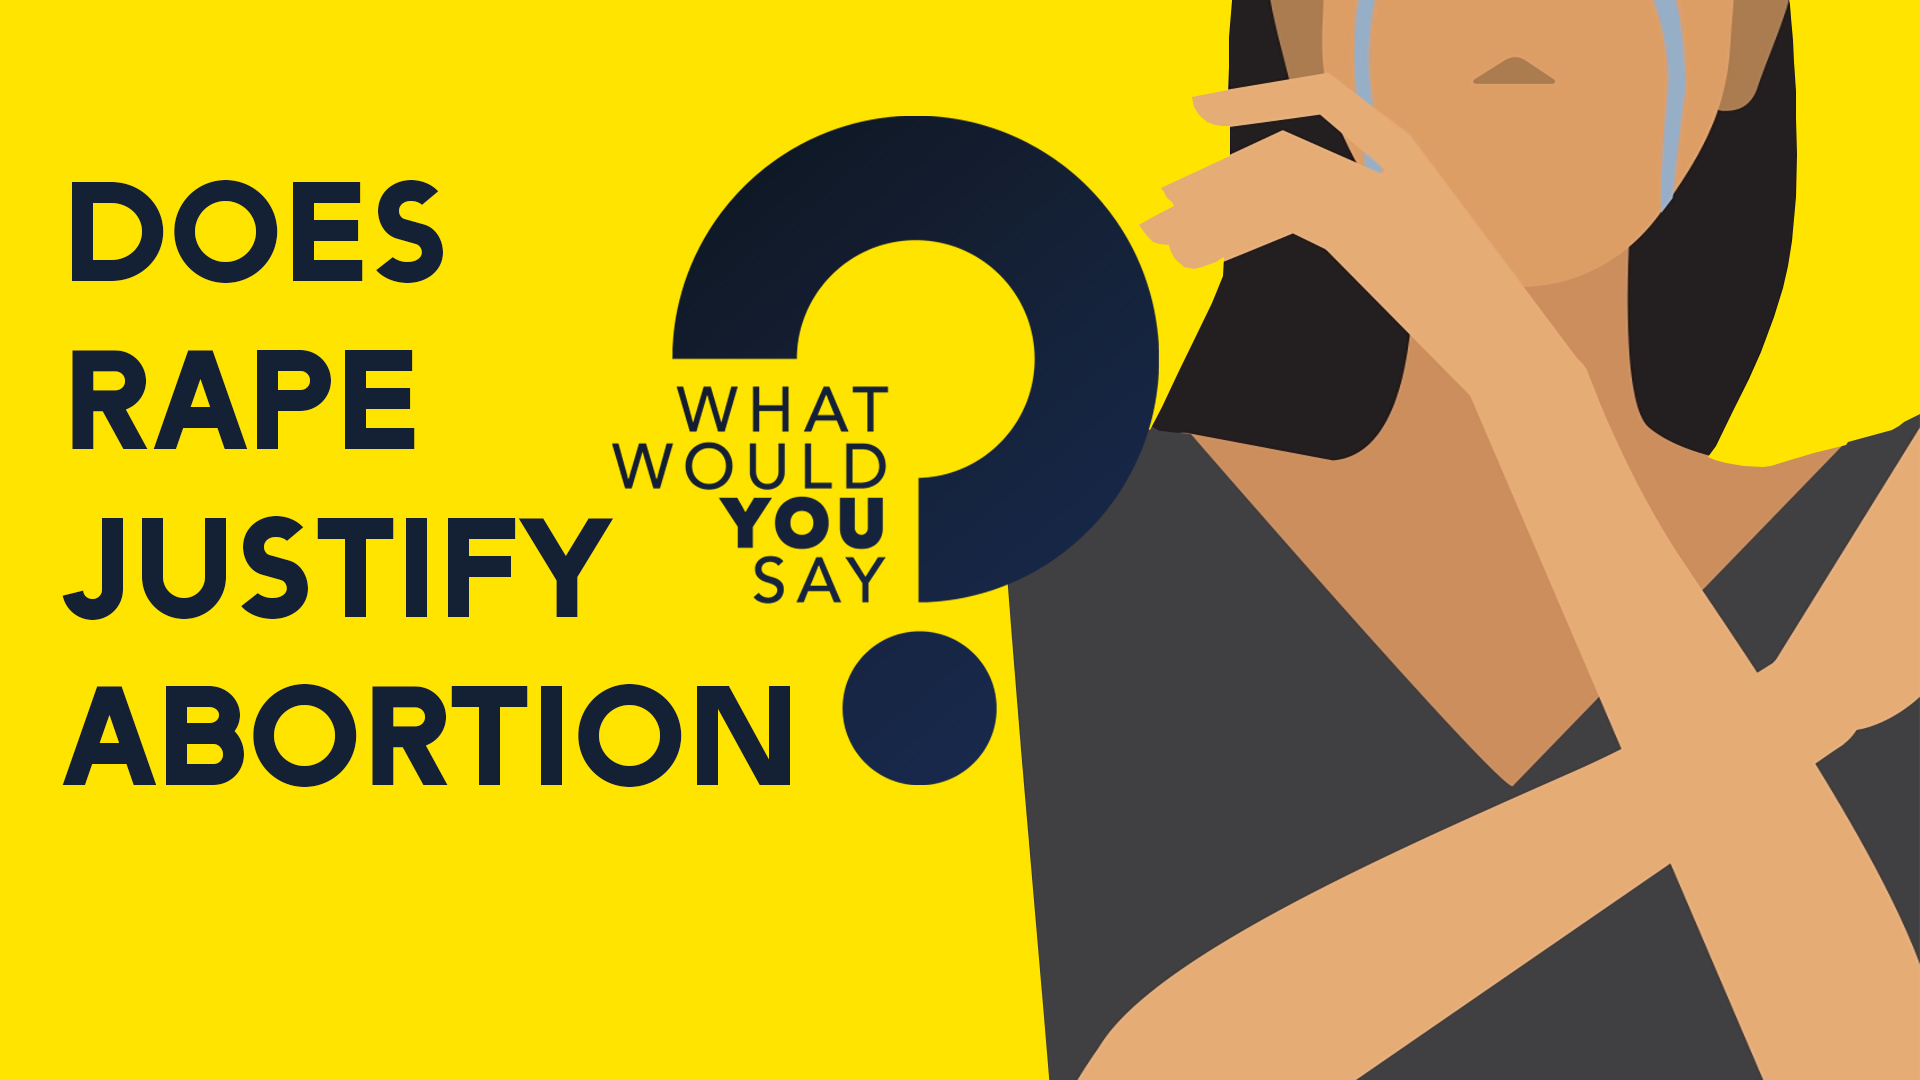 Does Rape Justify Abortion?